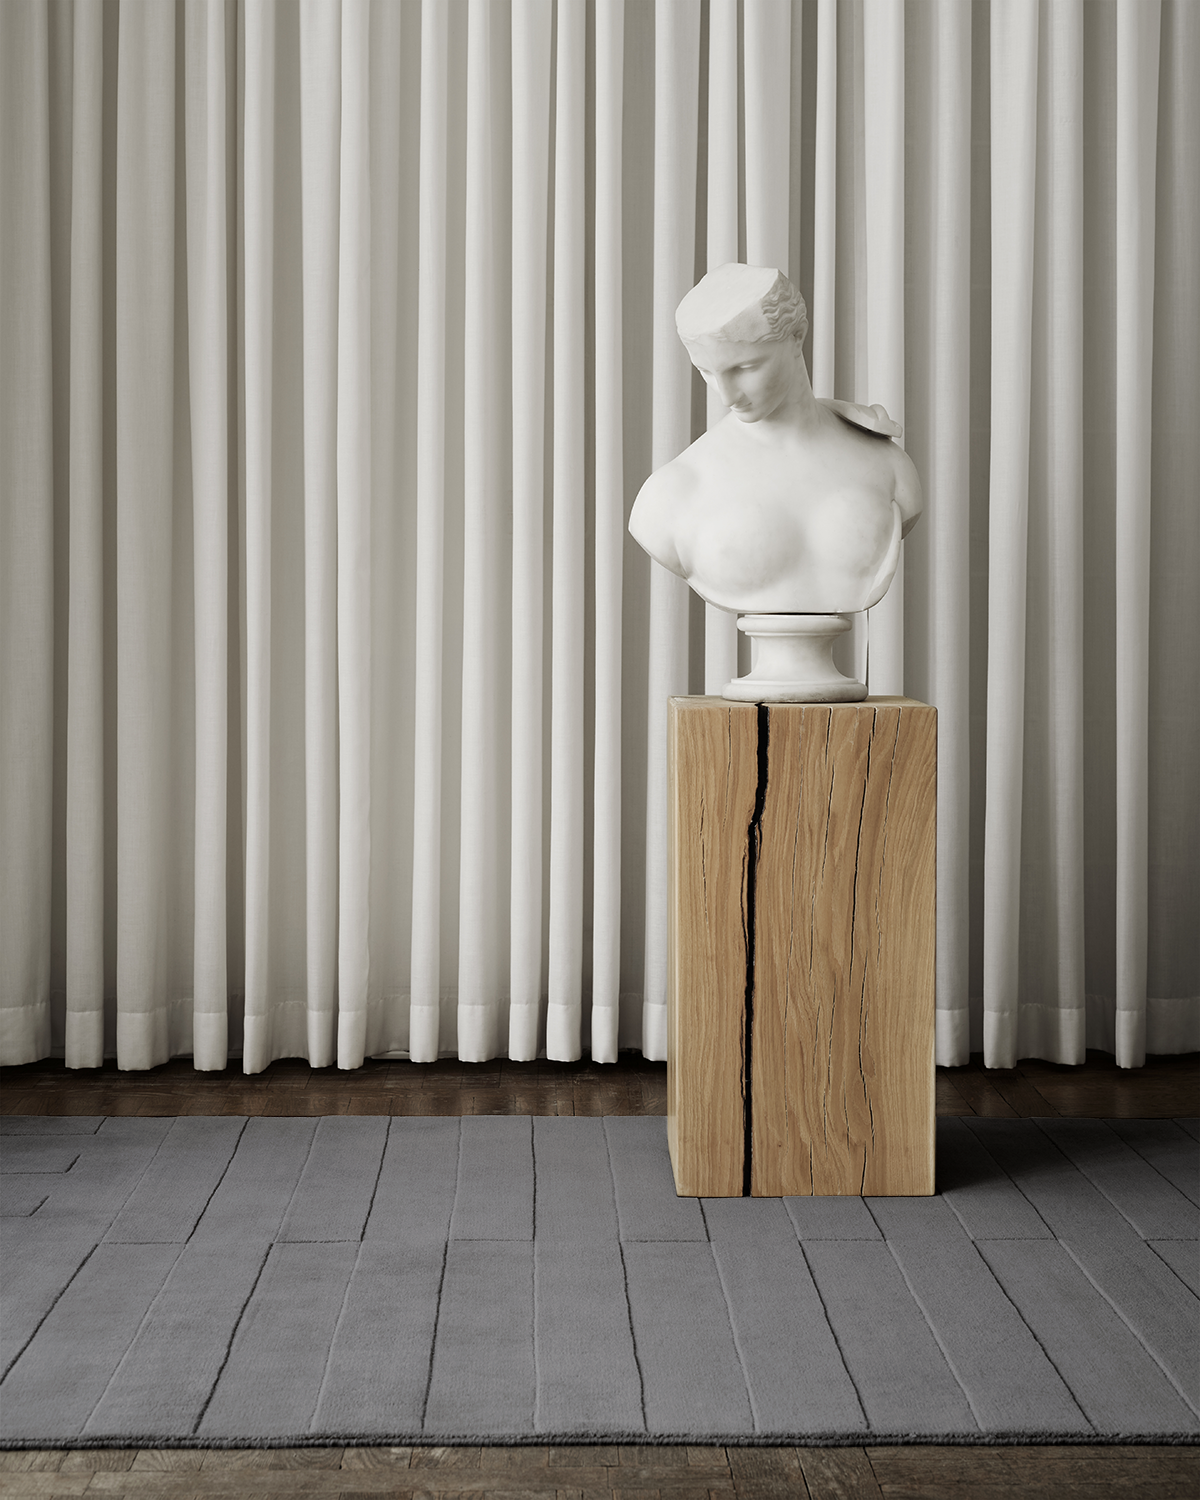 The Lux 2 rug in Gray displayed together with a marble bust on a wooden pedestal.